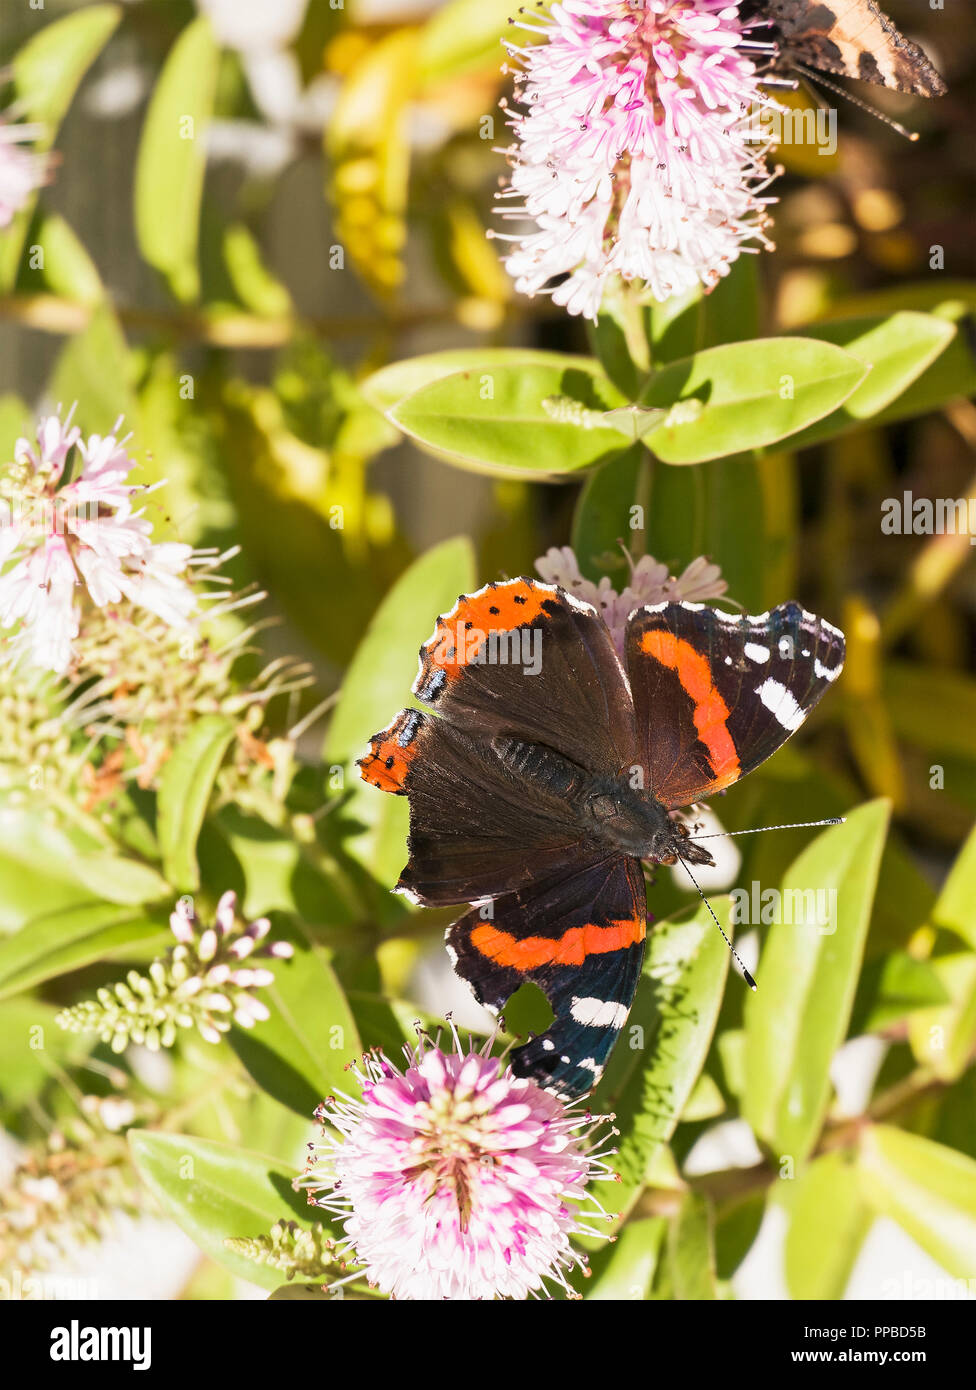 Red Admiral butterfly, Vanessa atlanta, with wings outstretched, UK - Stock Image